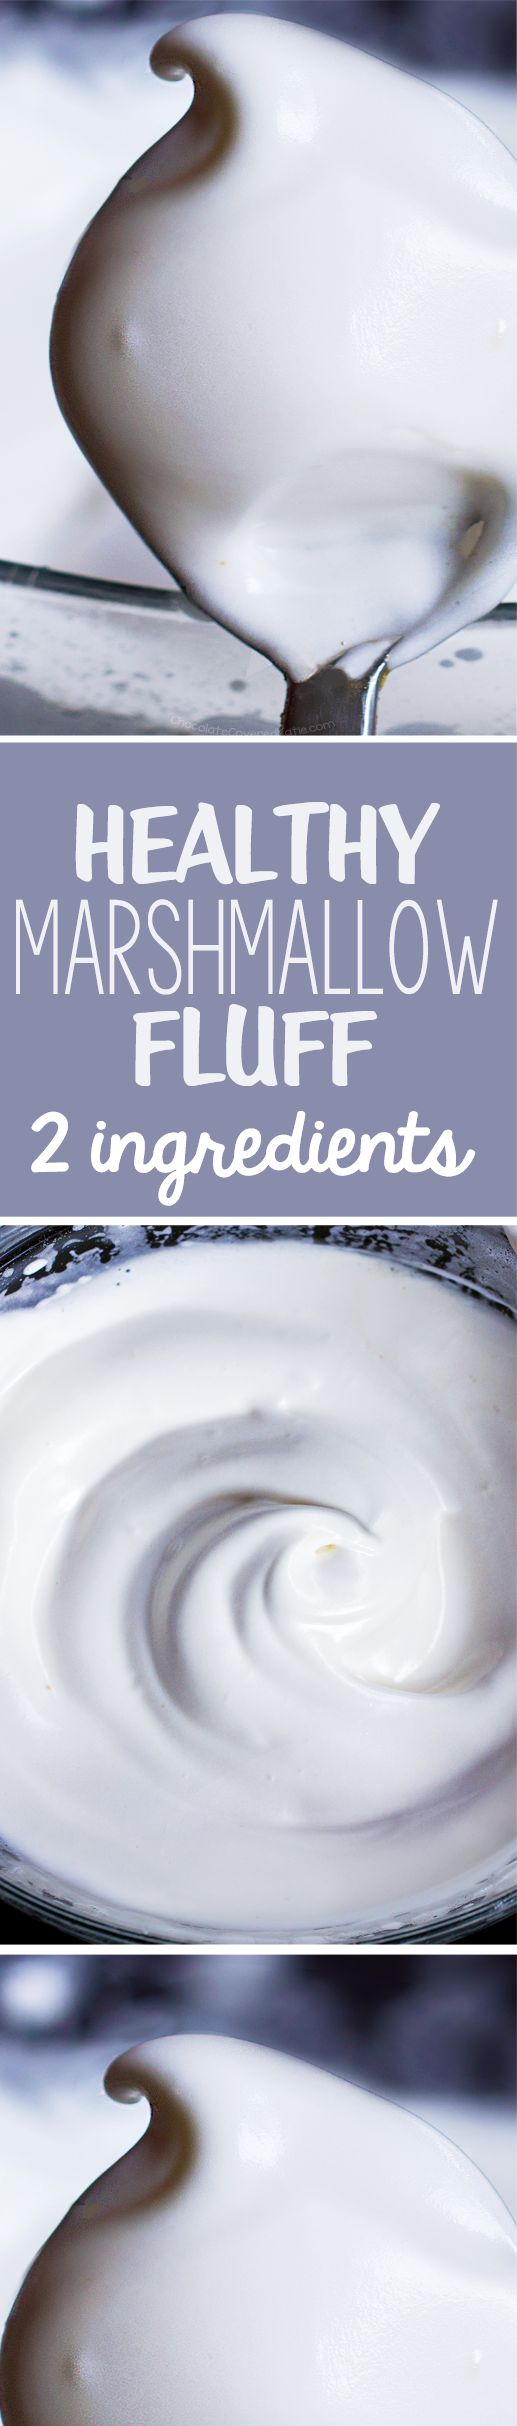 Just 5 minutes + 2 ingredients = the most amazing healthy marshmallow fluff recipe